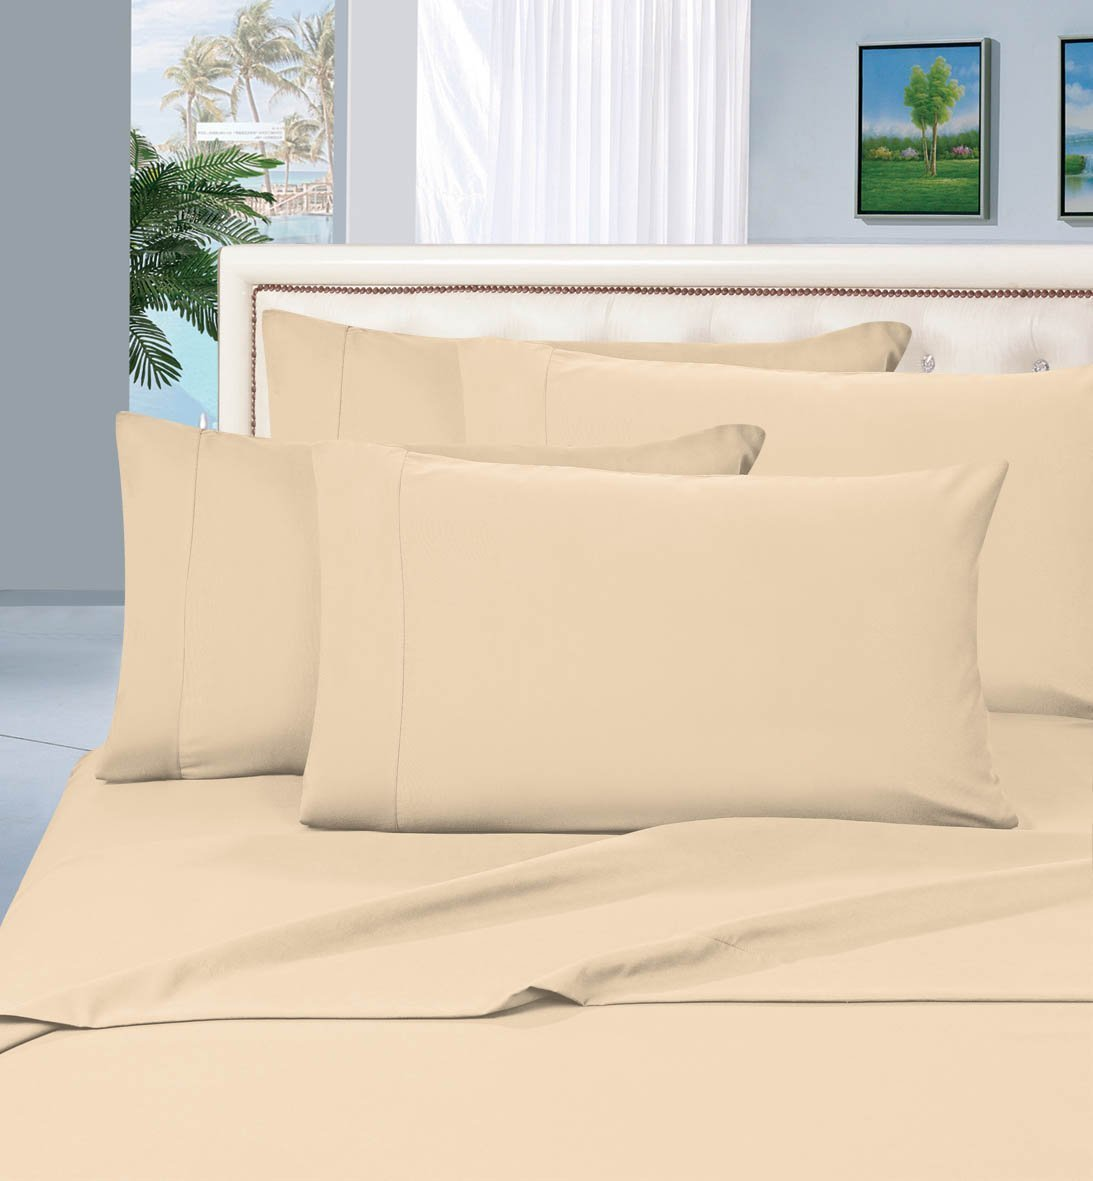 Bedding Outlet 1500 Series  4-Piece Bed Sheet Set, Deep Pocket up to 16 inch, Queen Cream/Tan